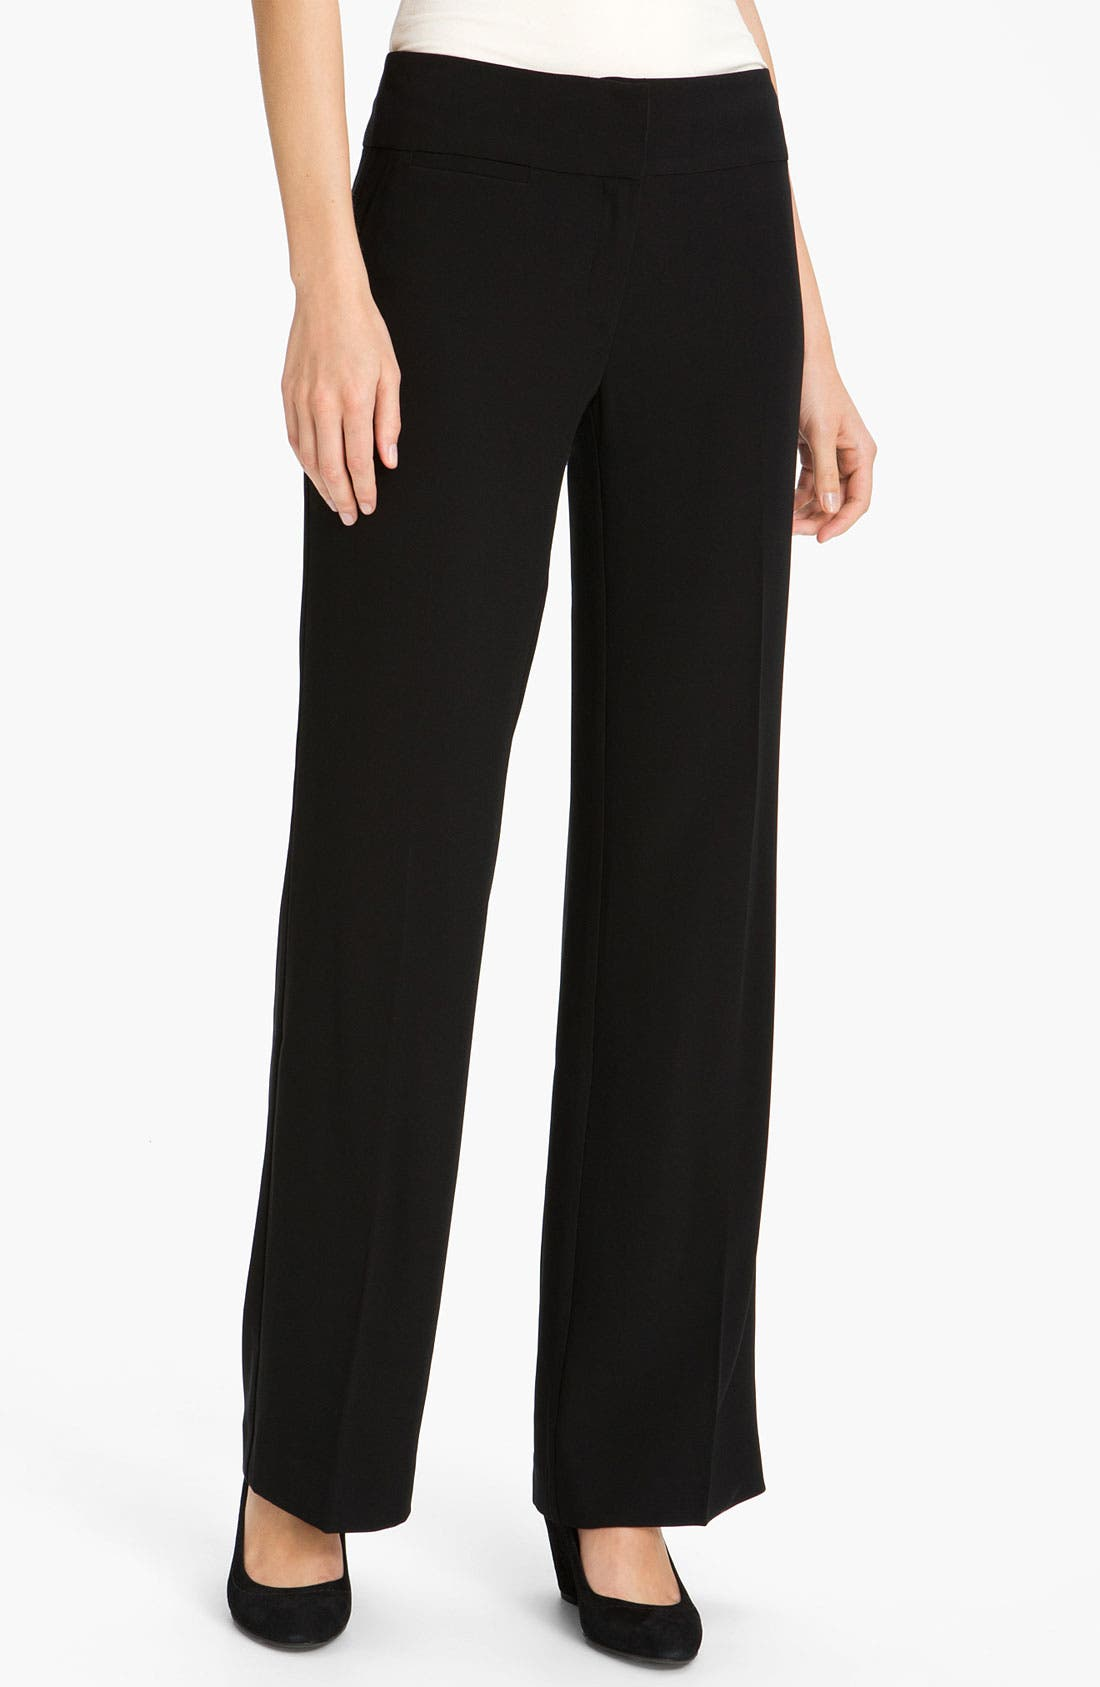 Alternate Image 1 Selected - Eileen Fisher Wide Leg Tropical Weight Trousers (Online Exclusive)